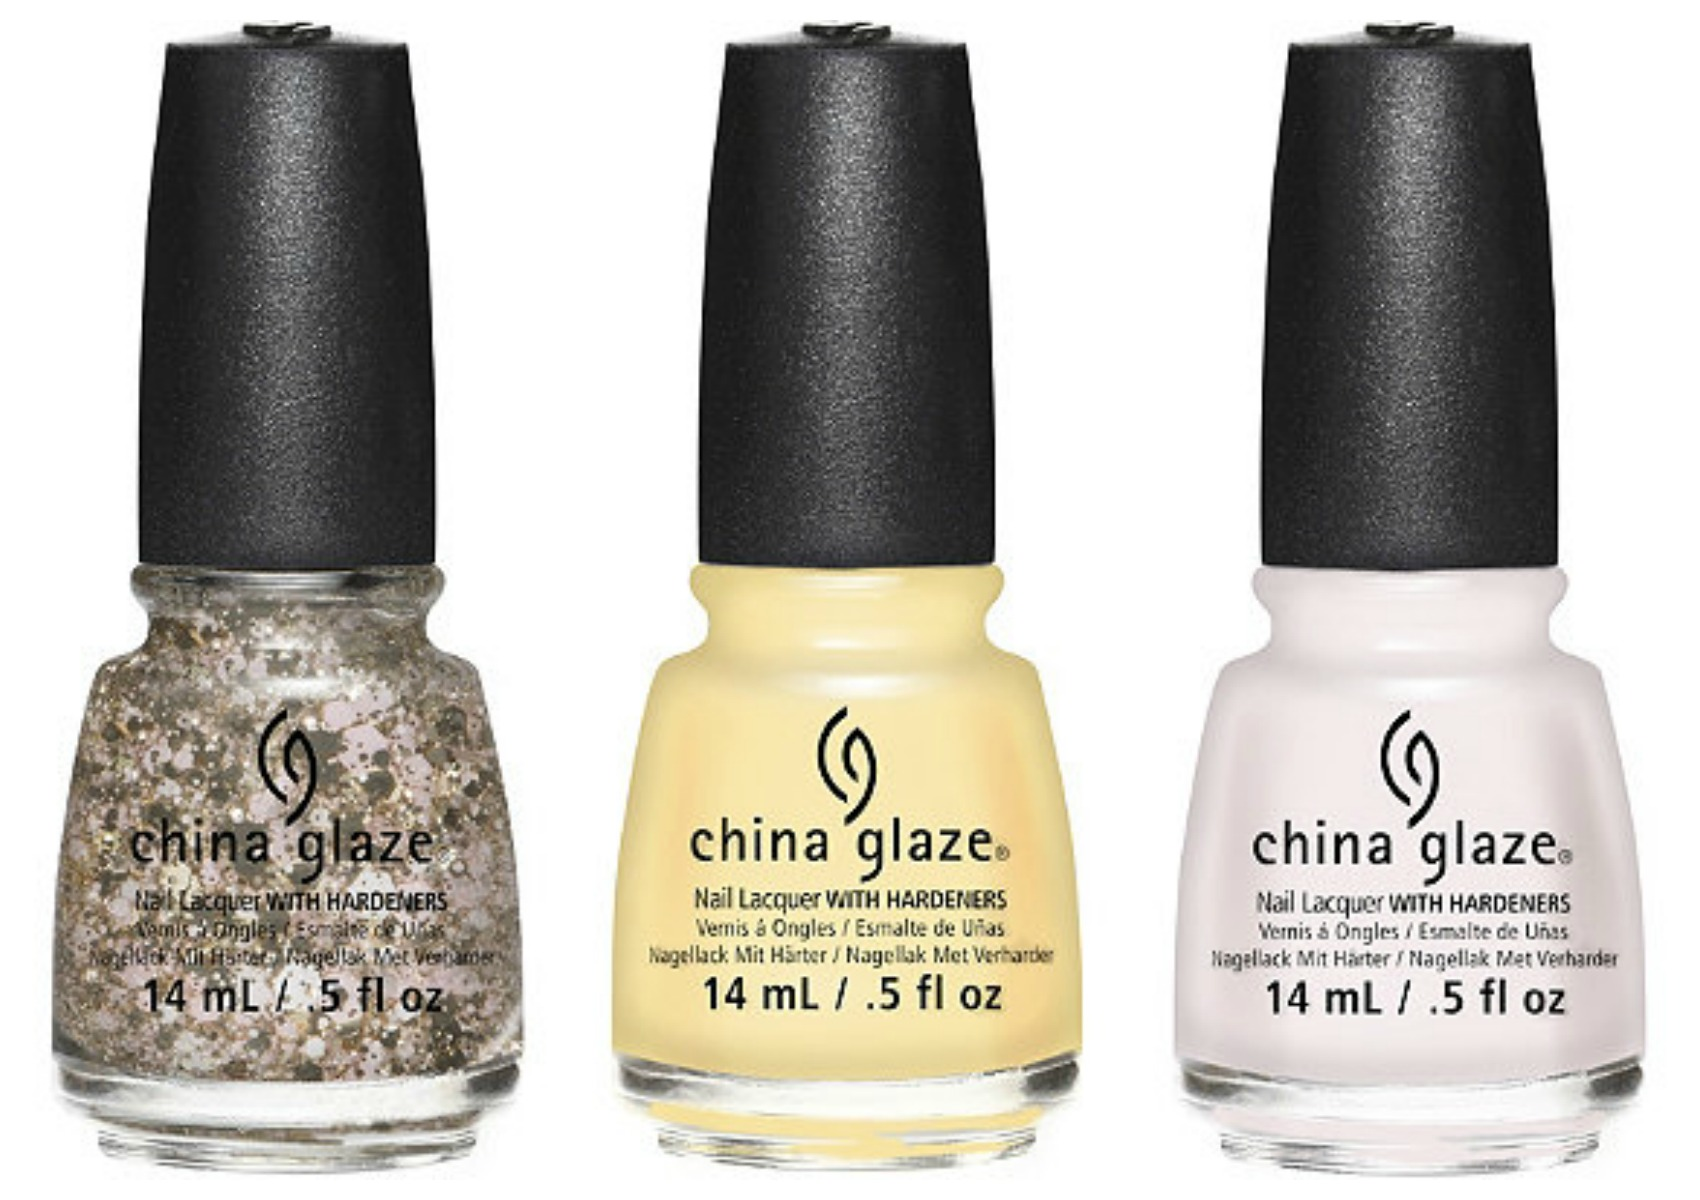 China Glaze House Colour Nail Polish Collection for Spring 2016 ...